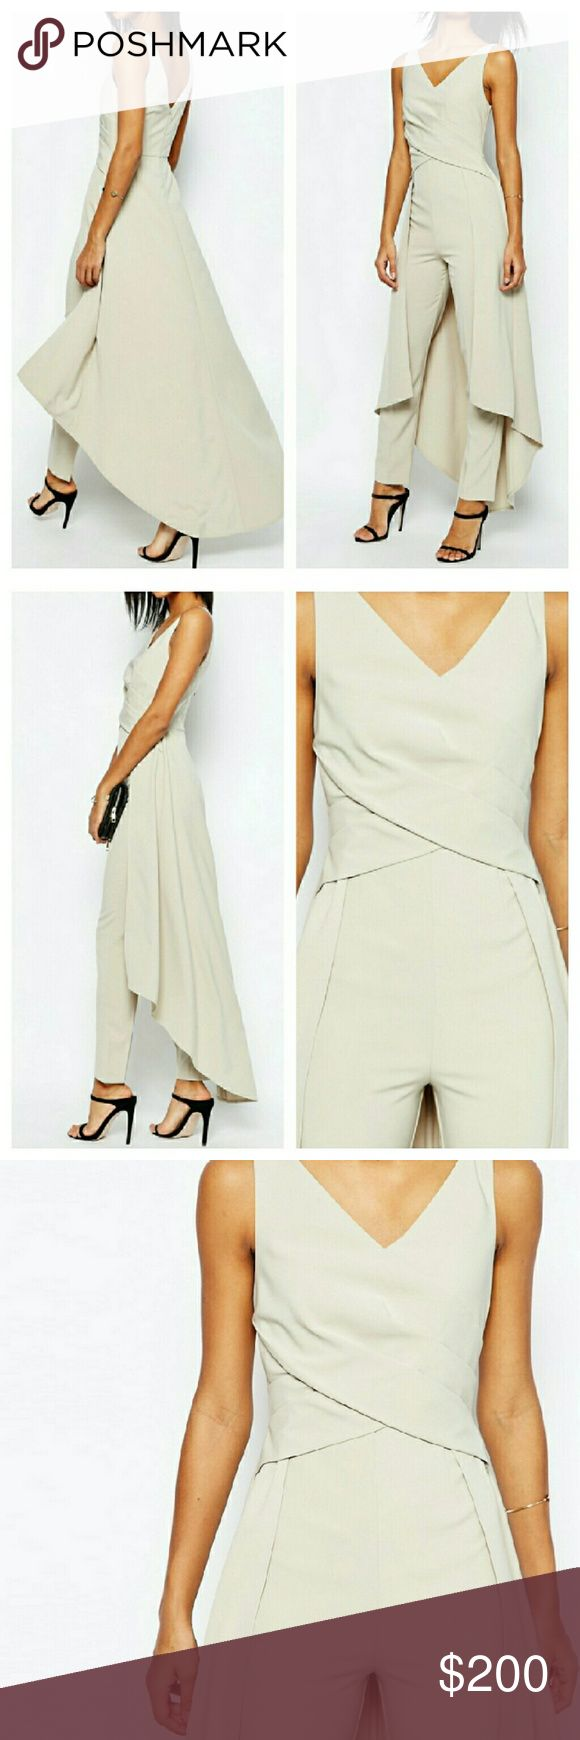 ASOS Skirted Back Dress Jumpsuit Romper Playsuit NWTs. UK 14 / US 10 size. Zip closure. True to size with slight stretch. Color is a greyish cream. COMPLETELY SOLD OUT. Reasonable offers considered. ASOS Pants Jumpsuits & Rompers